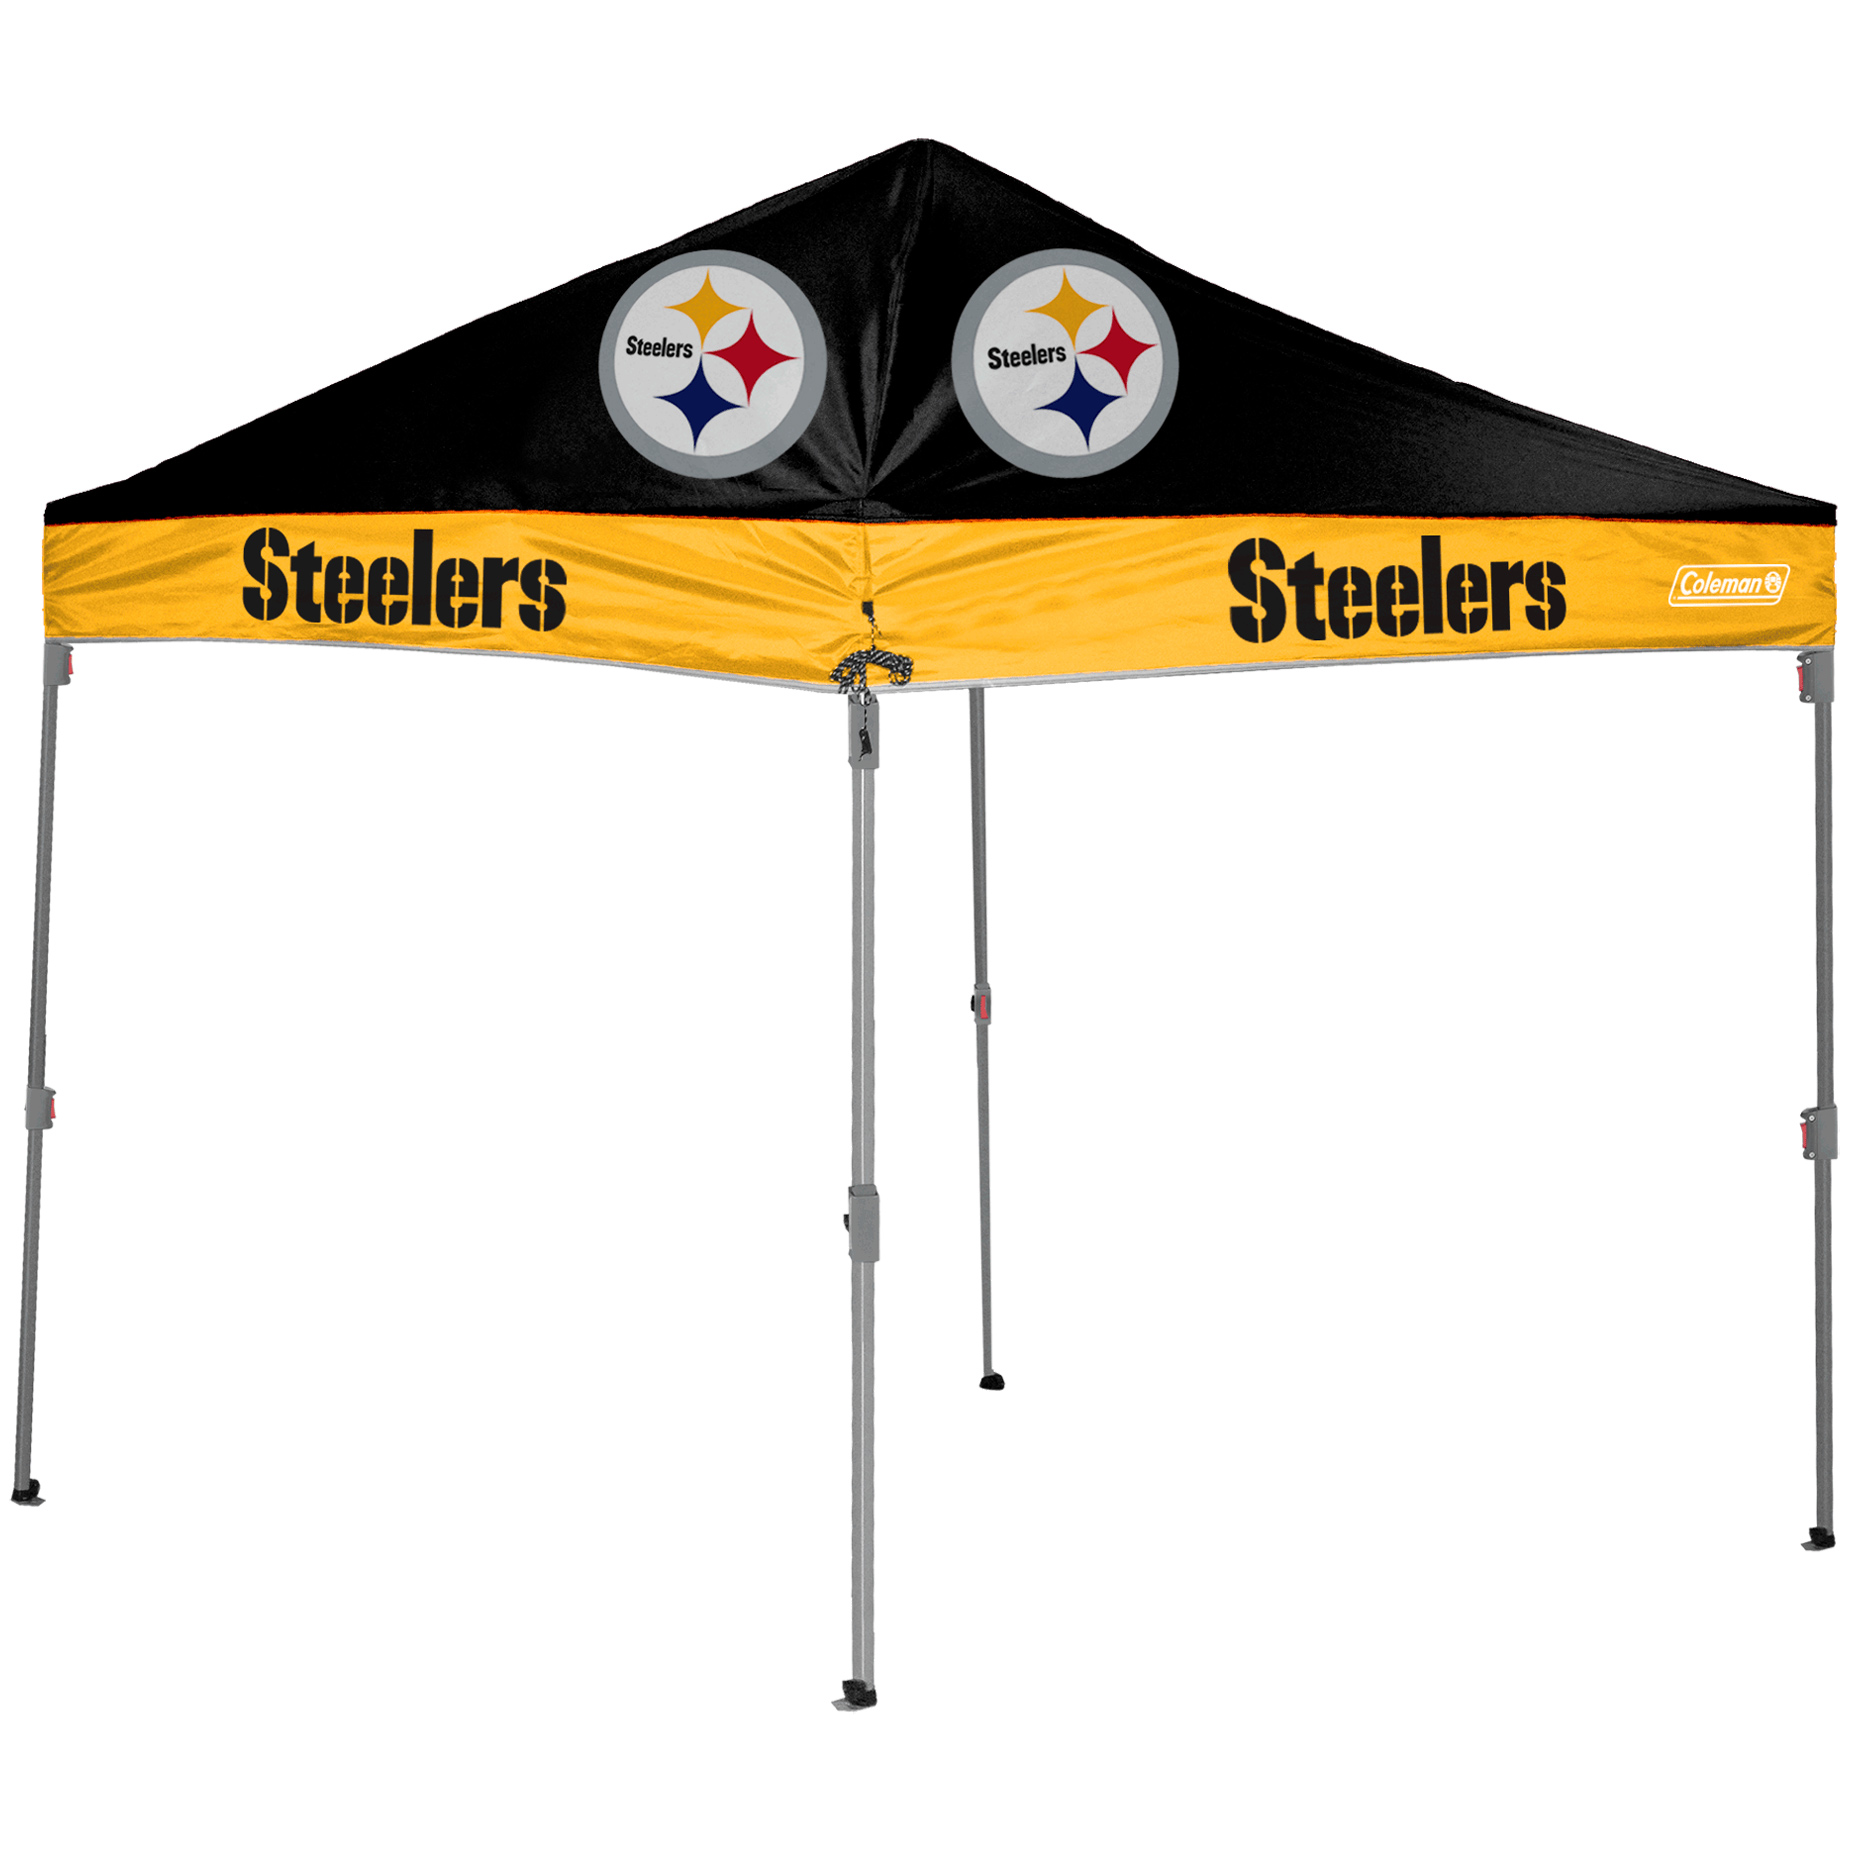 Pittsburgh Steelers Coleman 10' x 10' 2-Tone Straight Leg Canopy - No Size